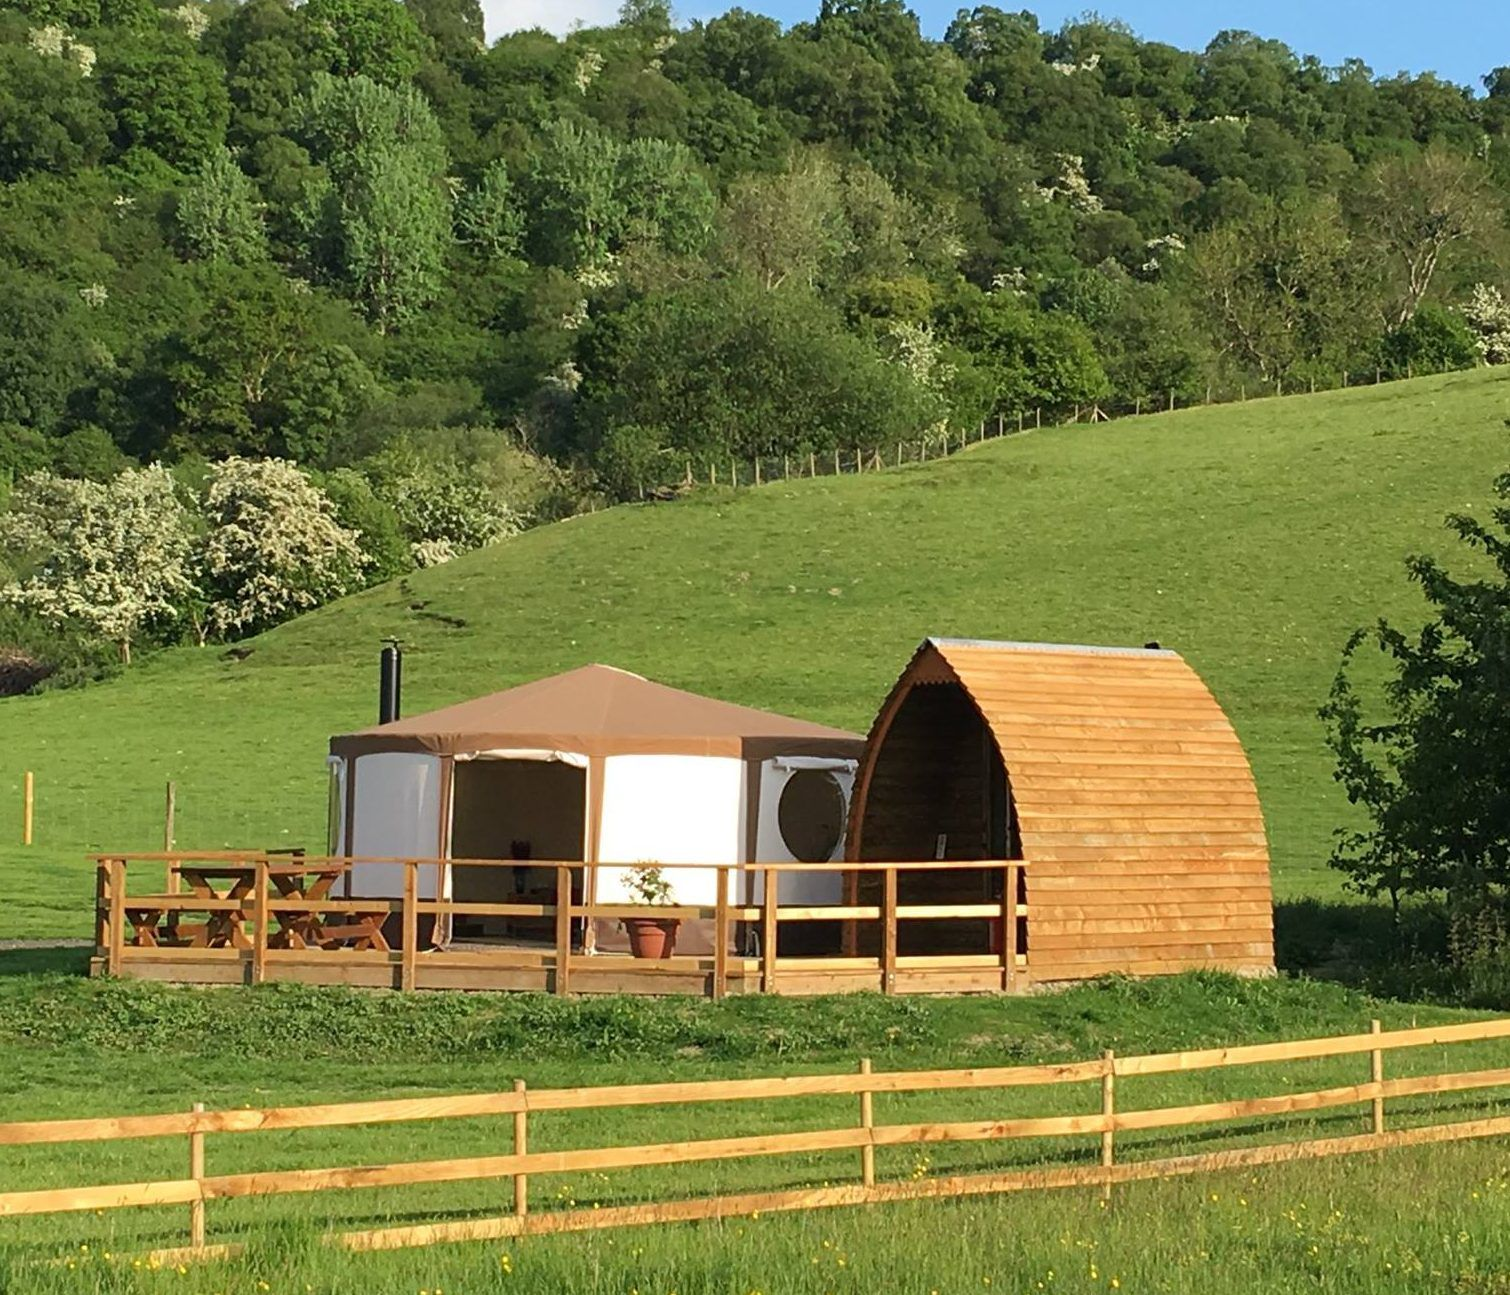 Glamping in Llandrindod Wells holidays at Cool Places